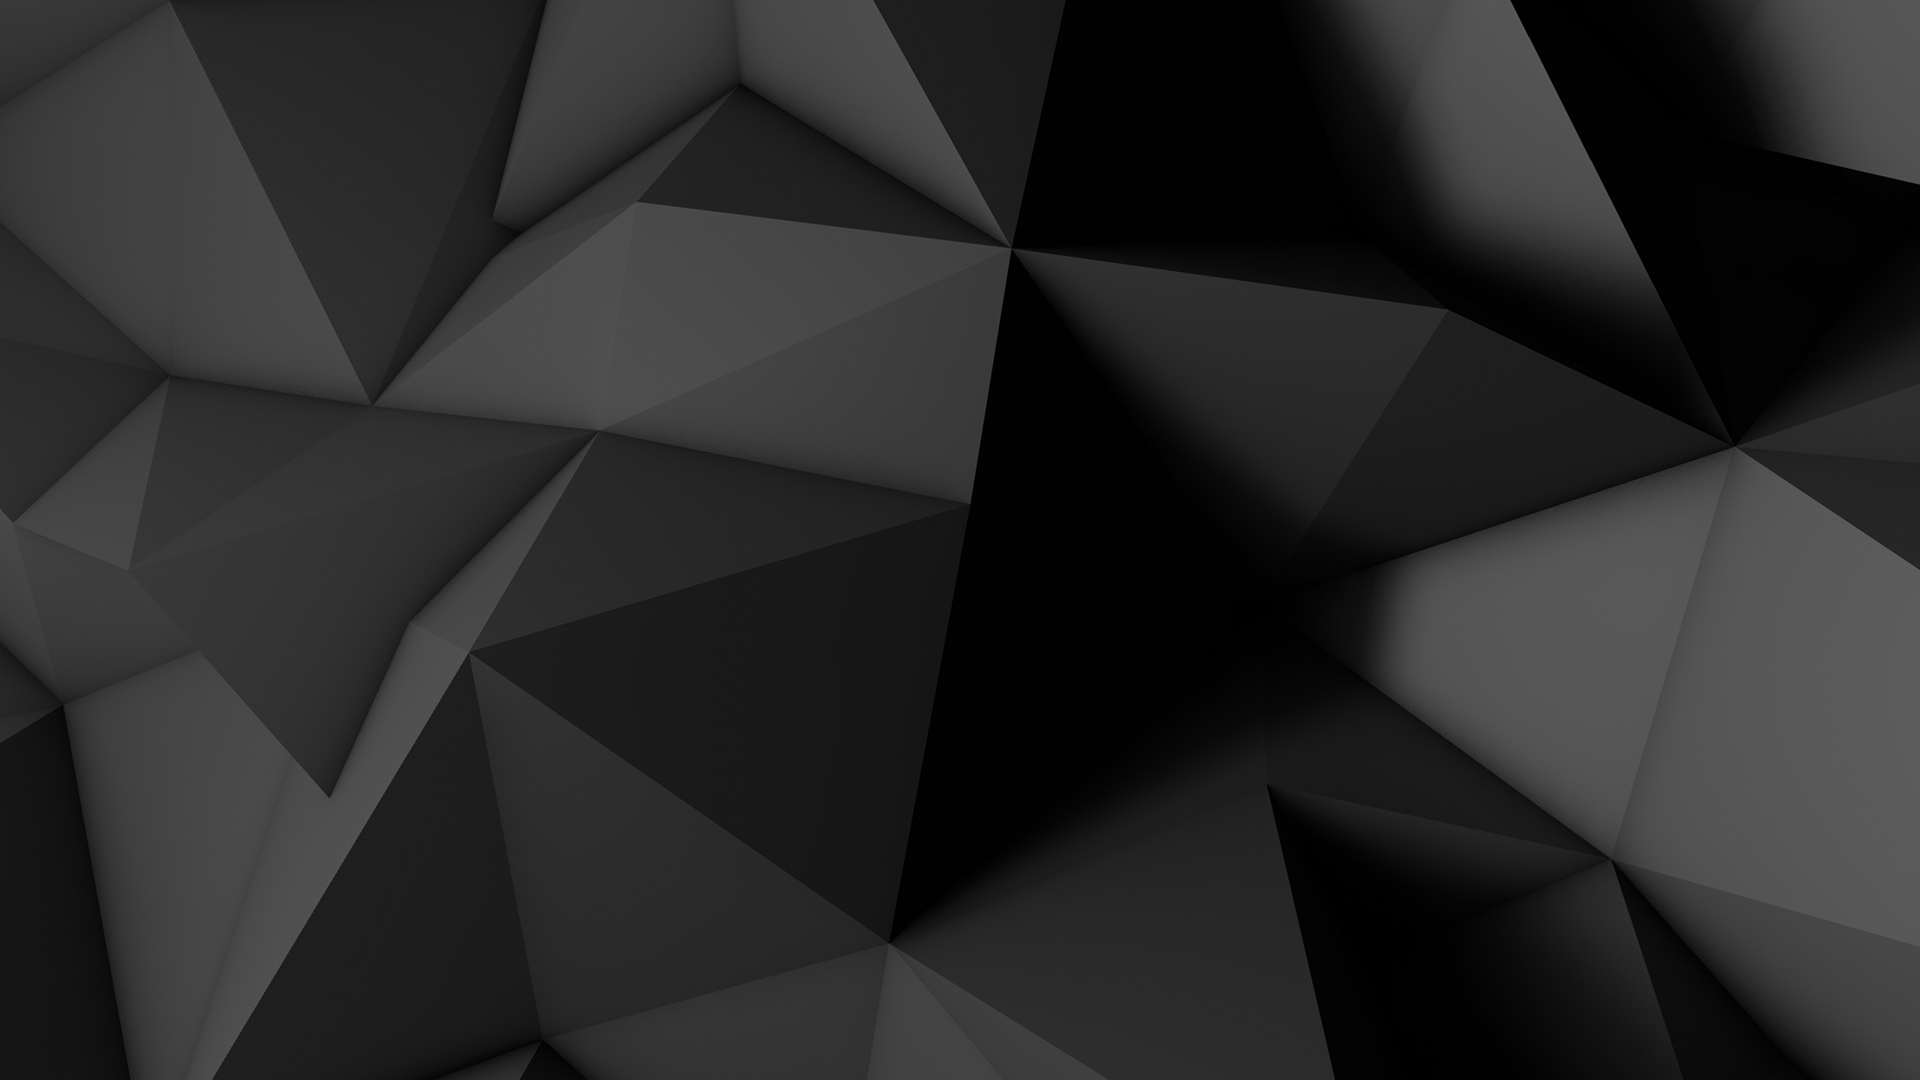 black diamond wallpaper hd | pixelstalk